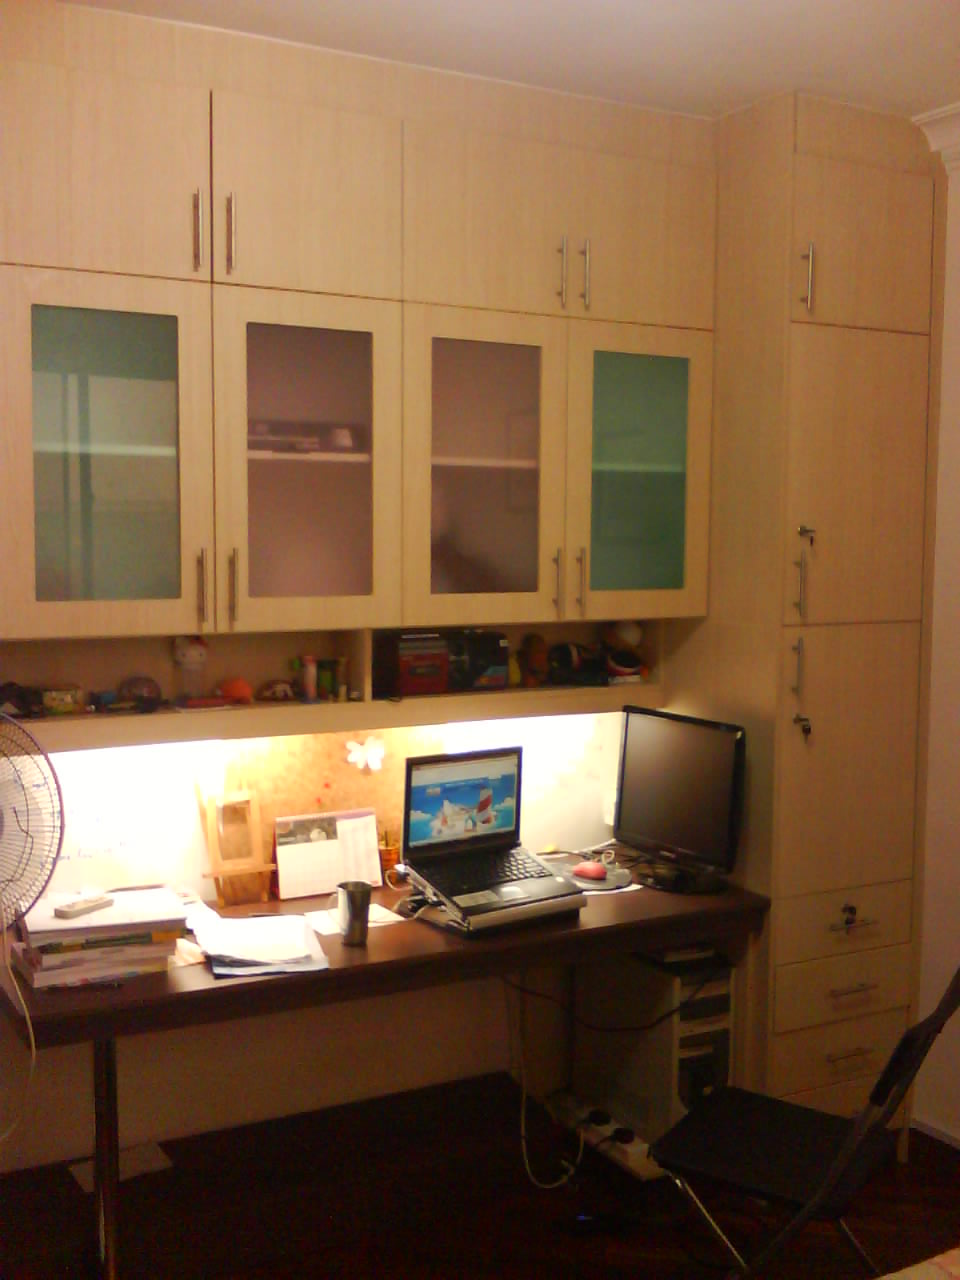 Cabinet design kuala lumpur study room design for Bedroom study table designs